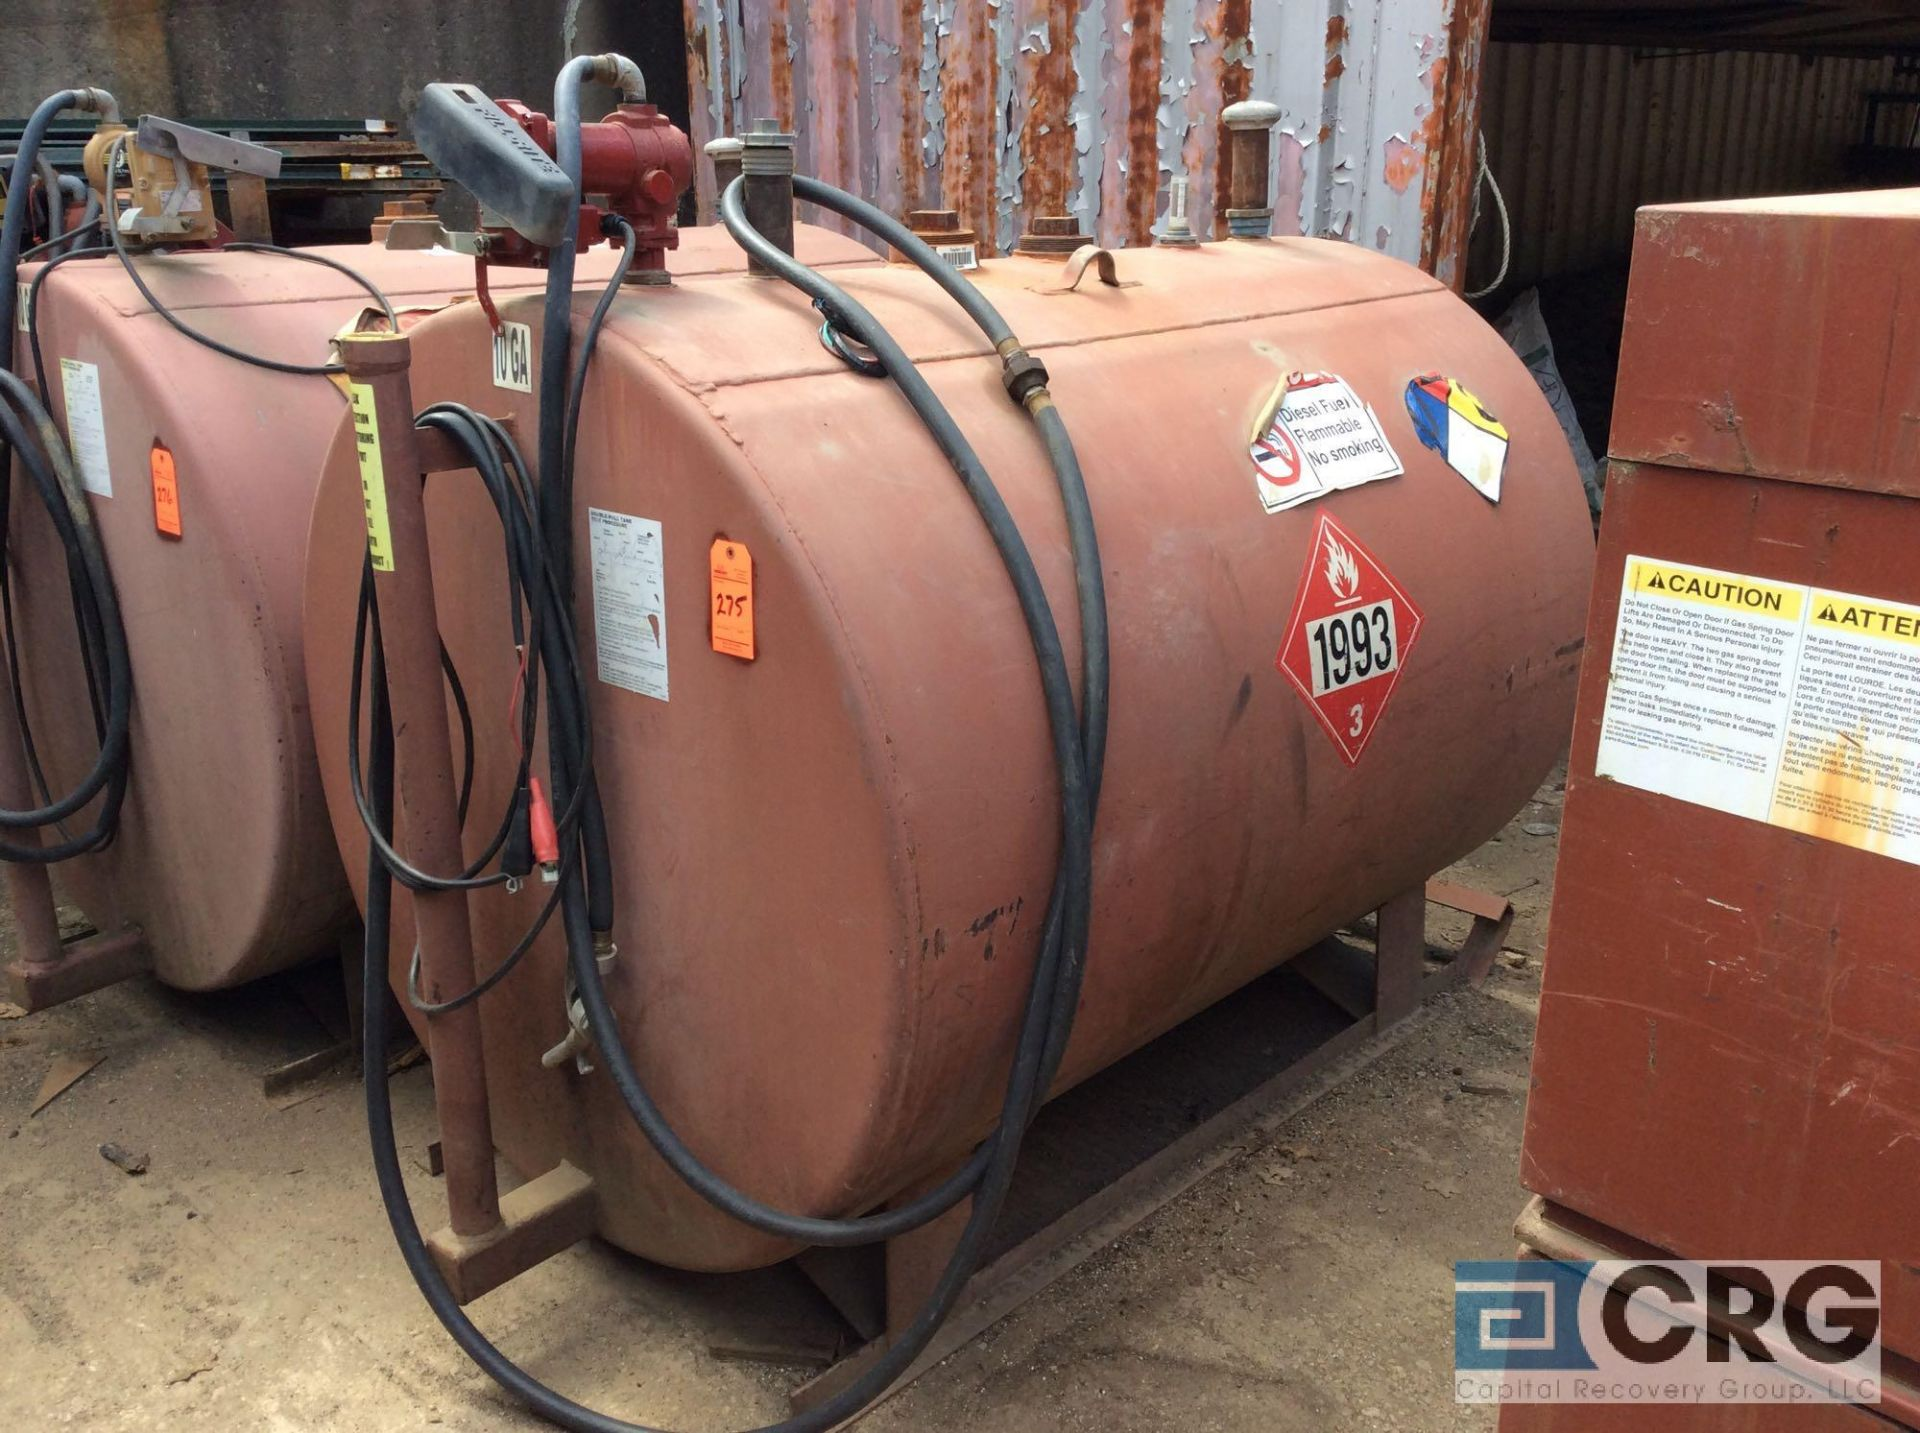 Lot 275 - double walled steel skid mounted fuel storage tank, approx 500 gal capacity with pump